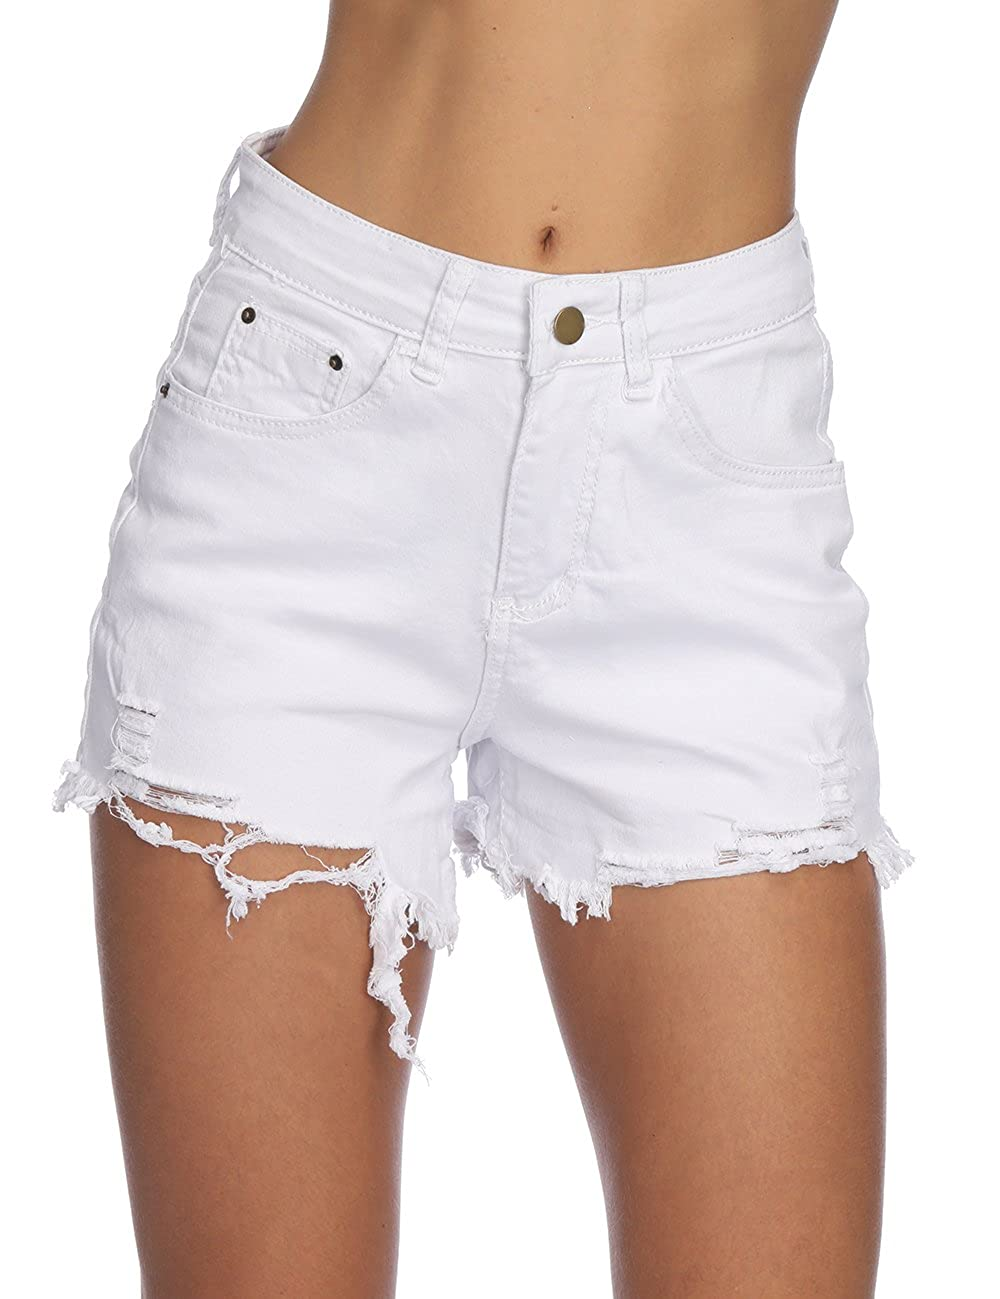 Haola Womens Denim Shorts Summer Stretchy Frayed Raw Hem Distressed Jeans Shorts